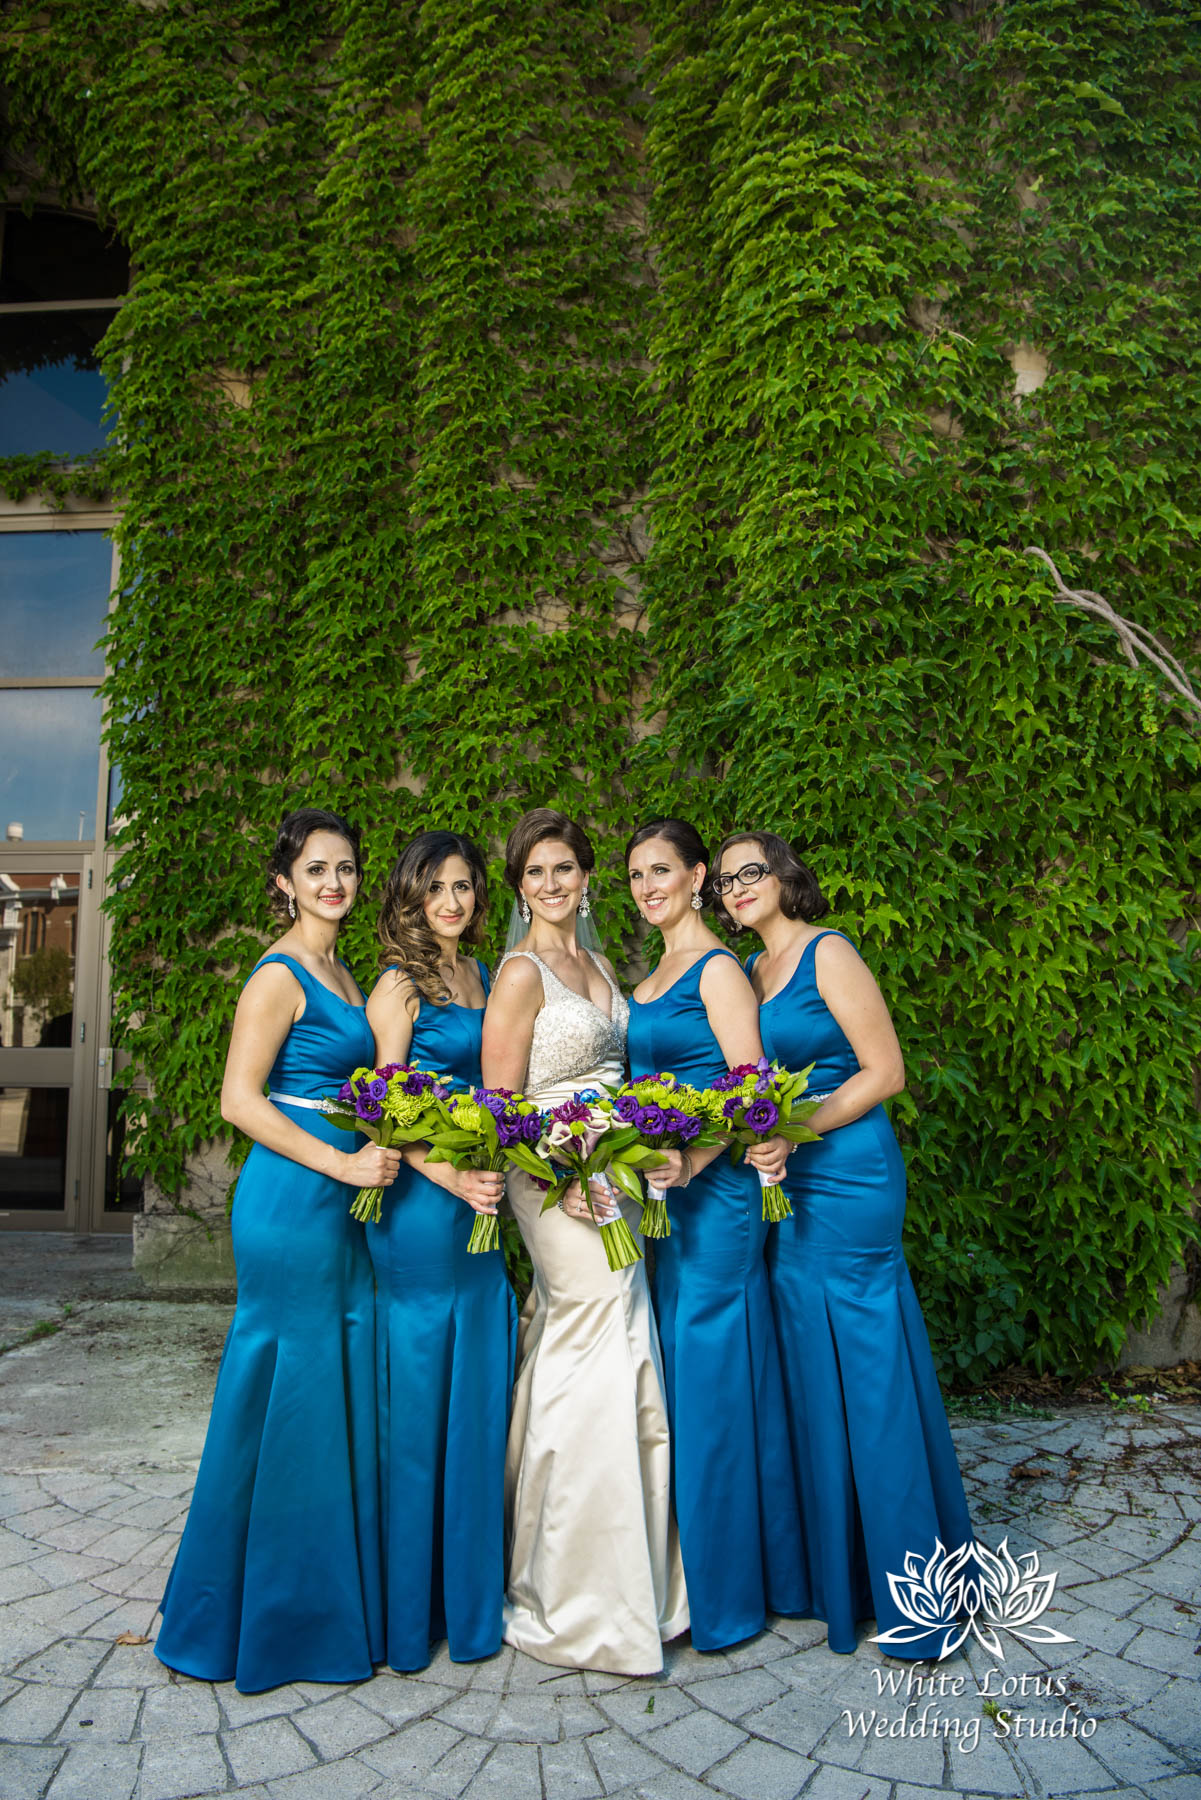 147 - Wedding - Toronto - Liberty Grand - Bridesmaids - PW